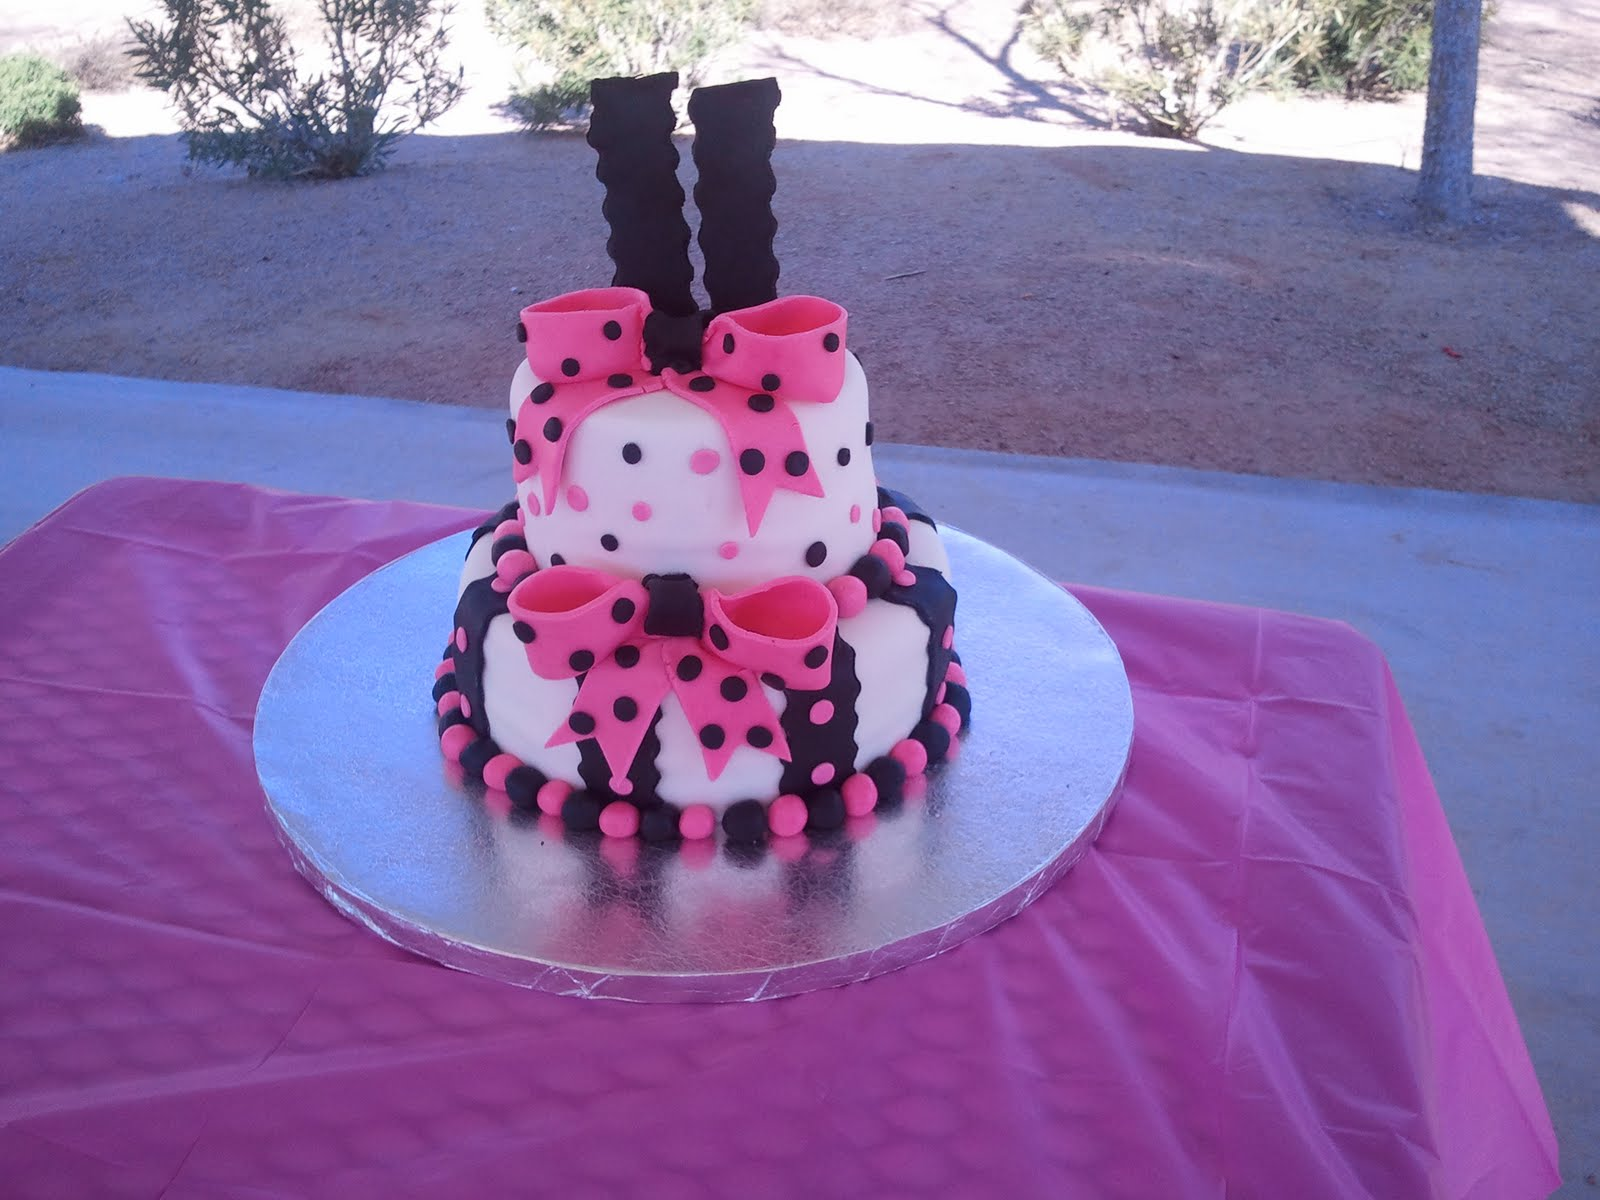 Stace A Base Cakes Hot Pink And Black Birthday Cake January 2011